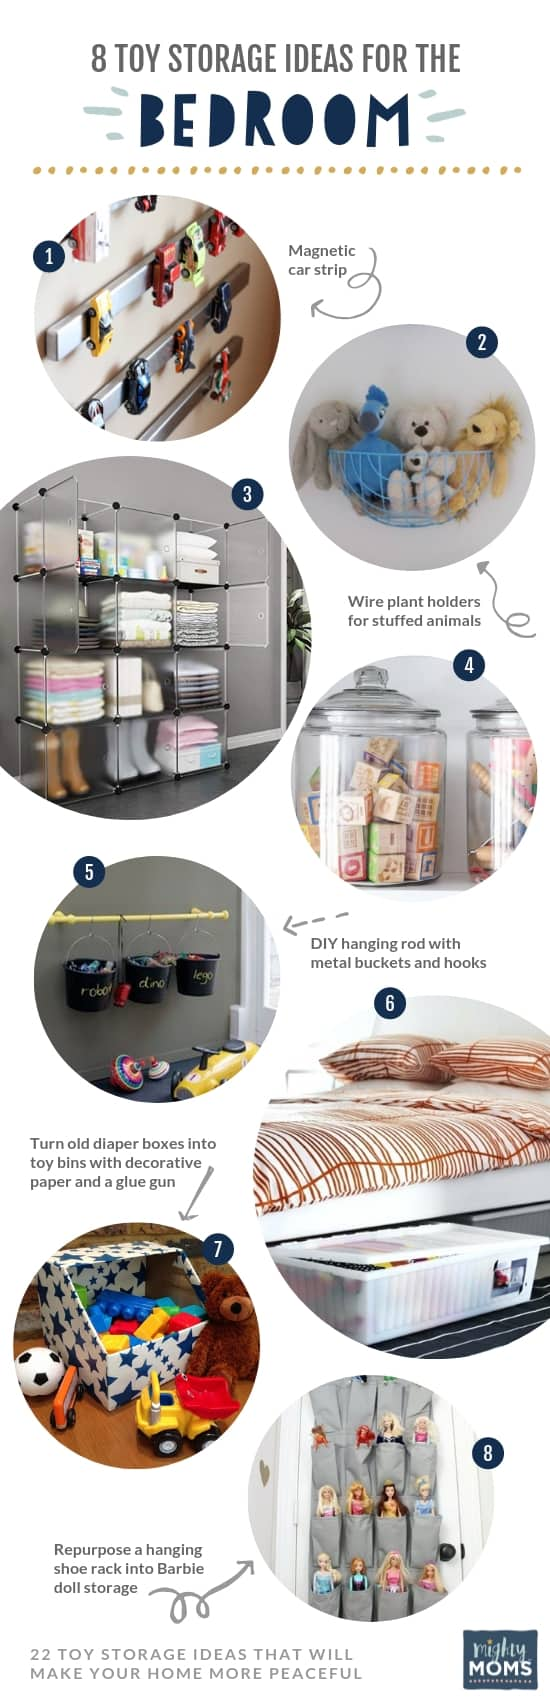 8 Toy Organization Ideas for the Bedroom - MightyMoms.club